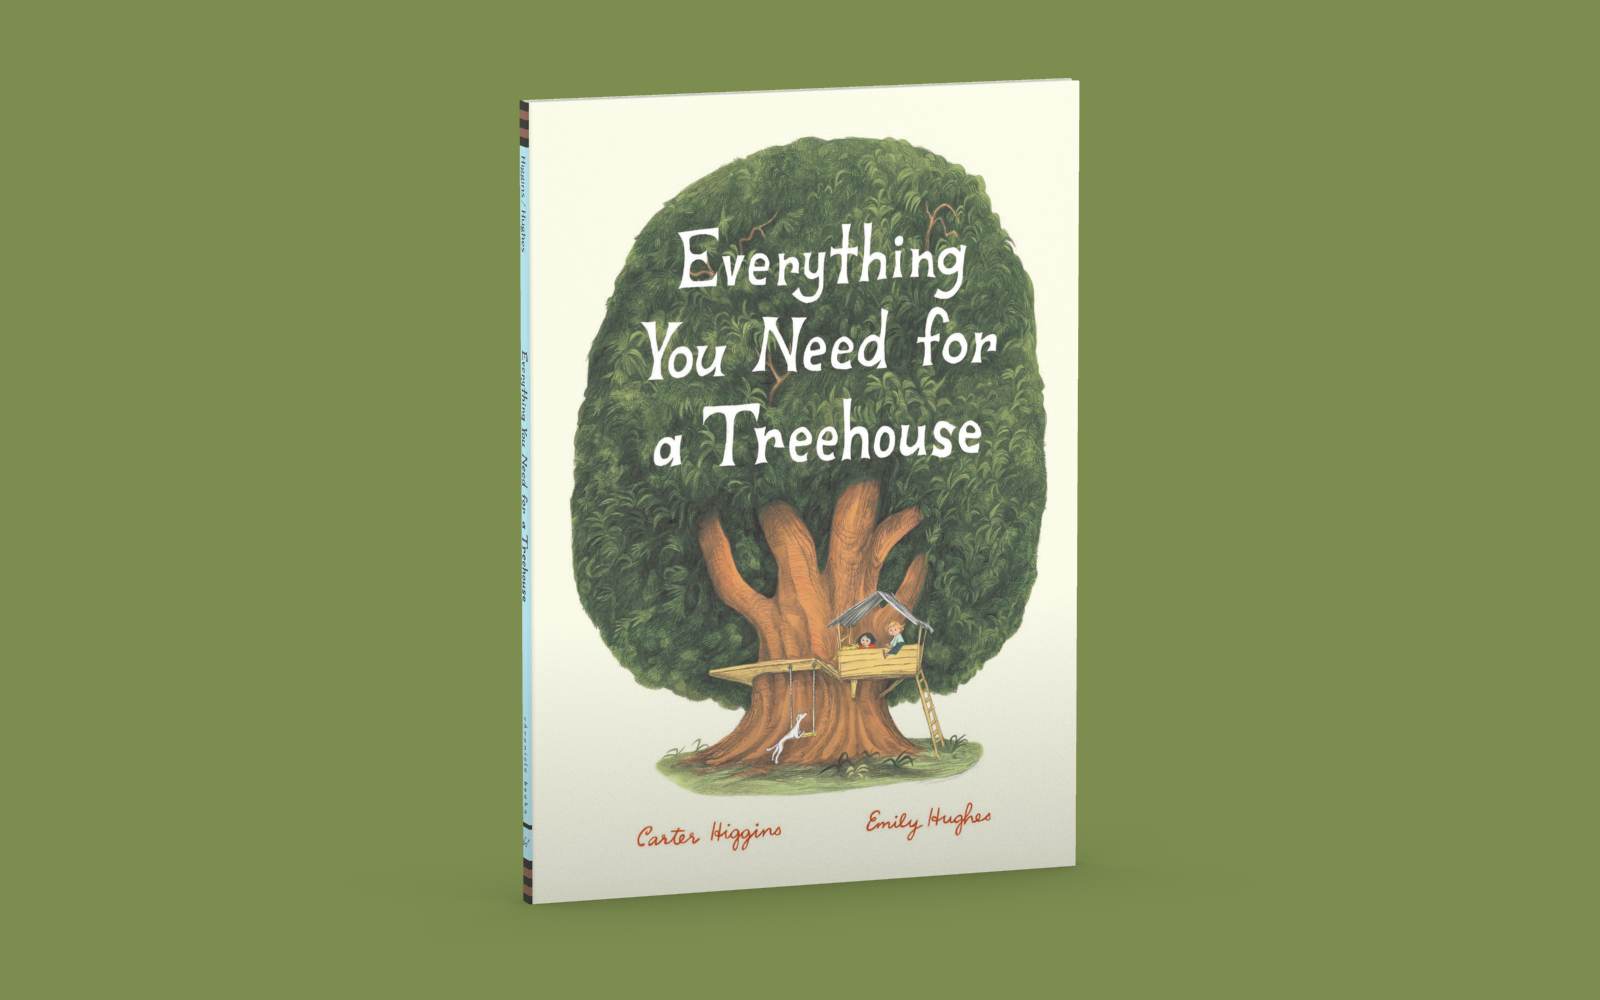 EverythingTreehouse_Cover.png